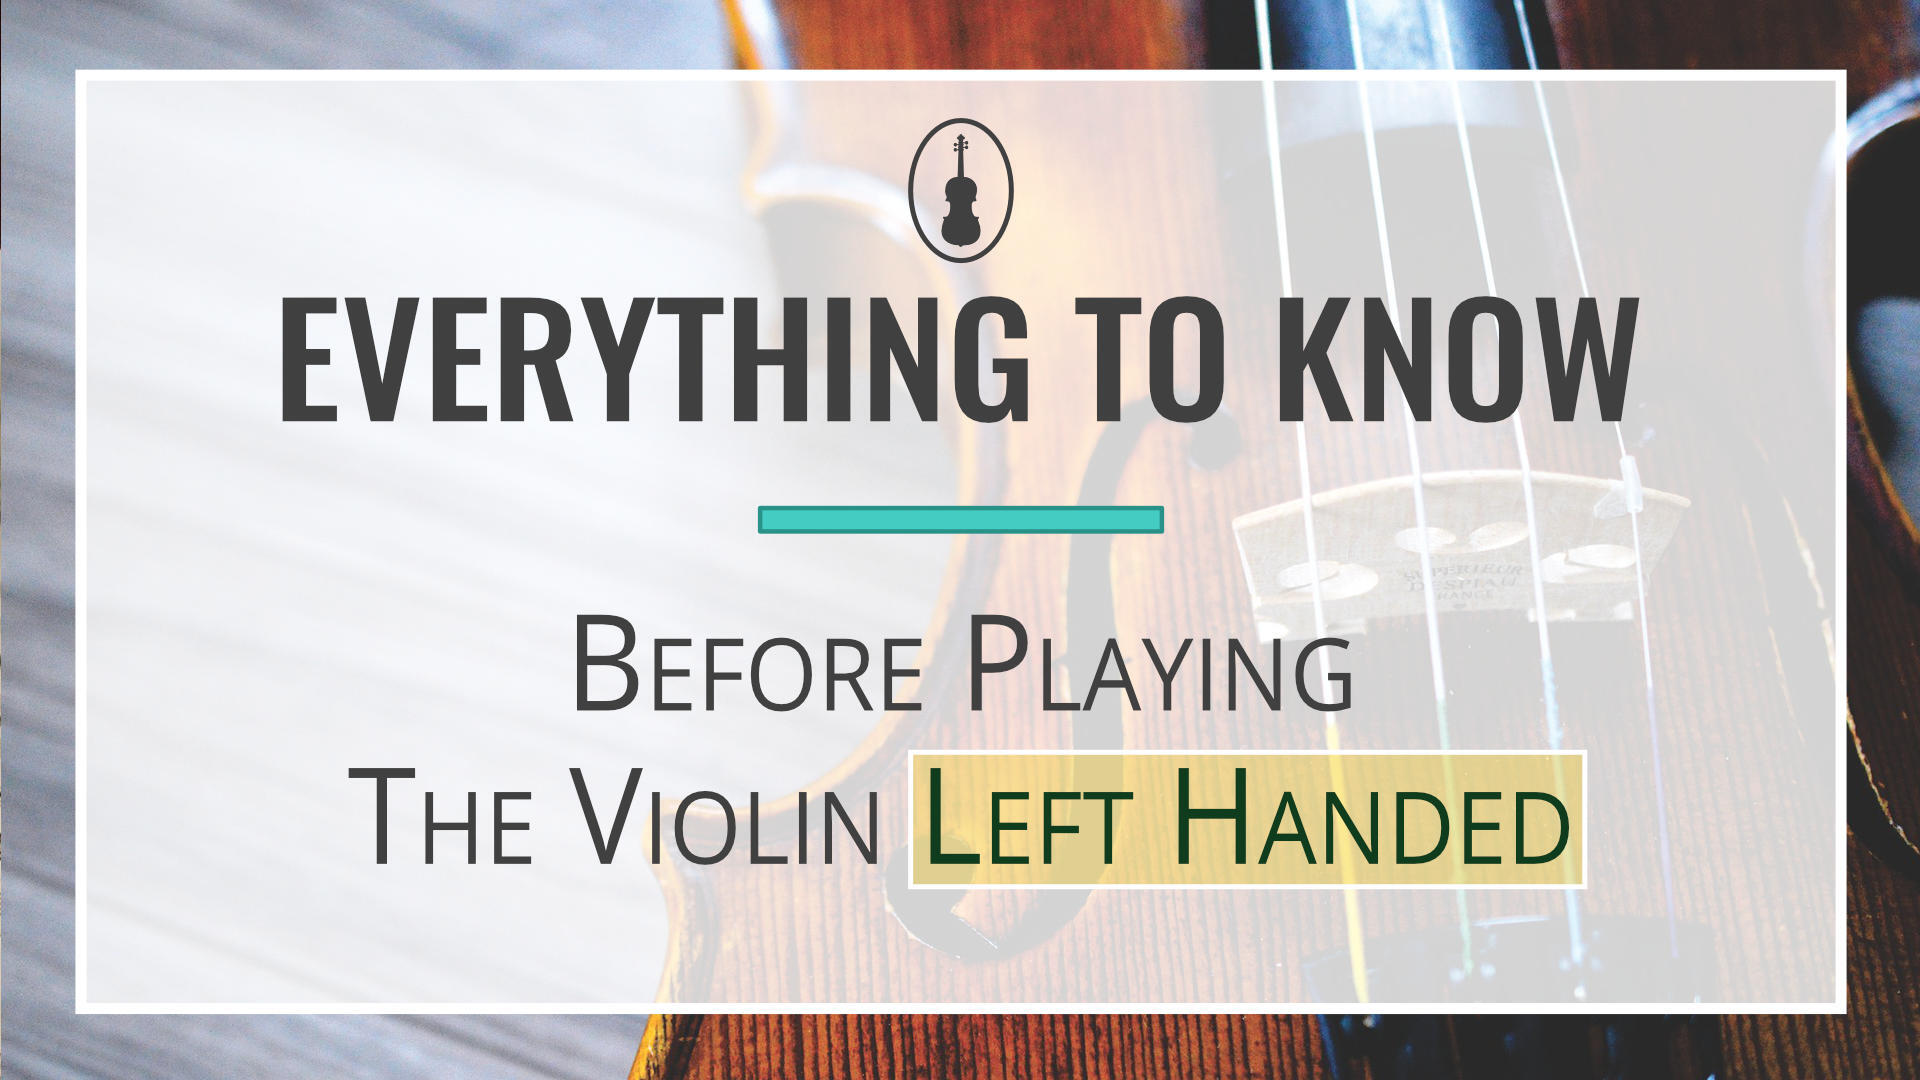 Blog - Everything to Know Before Playing the Violin Left Handed